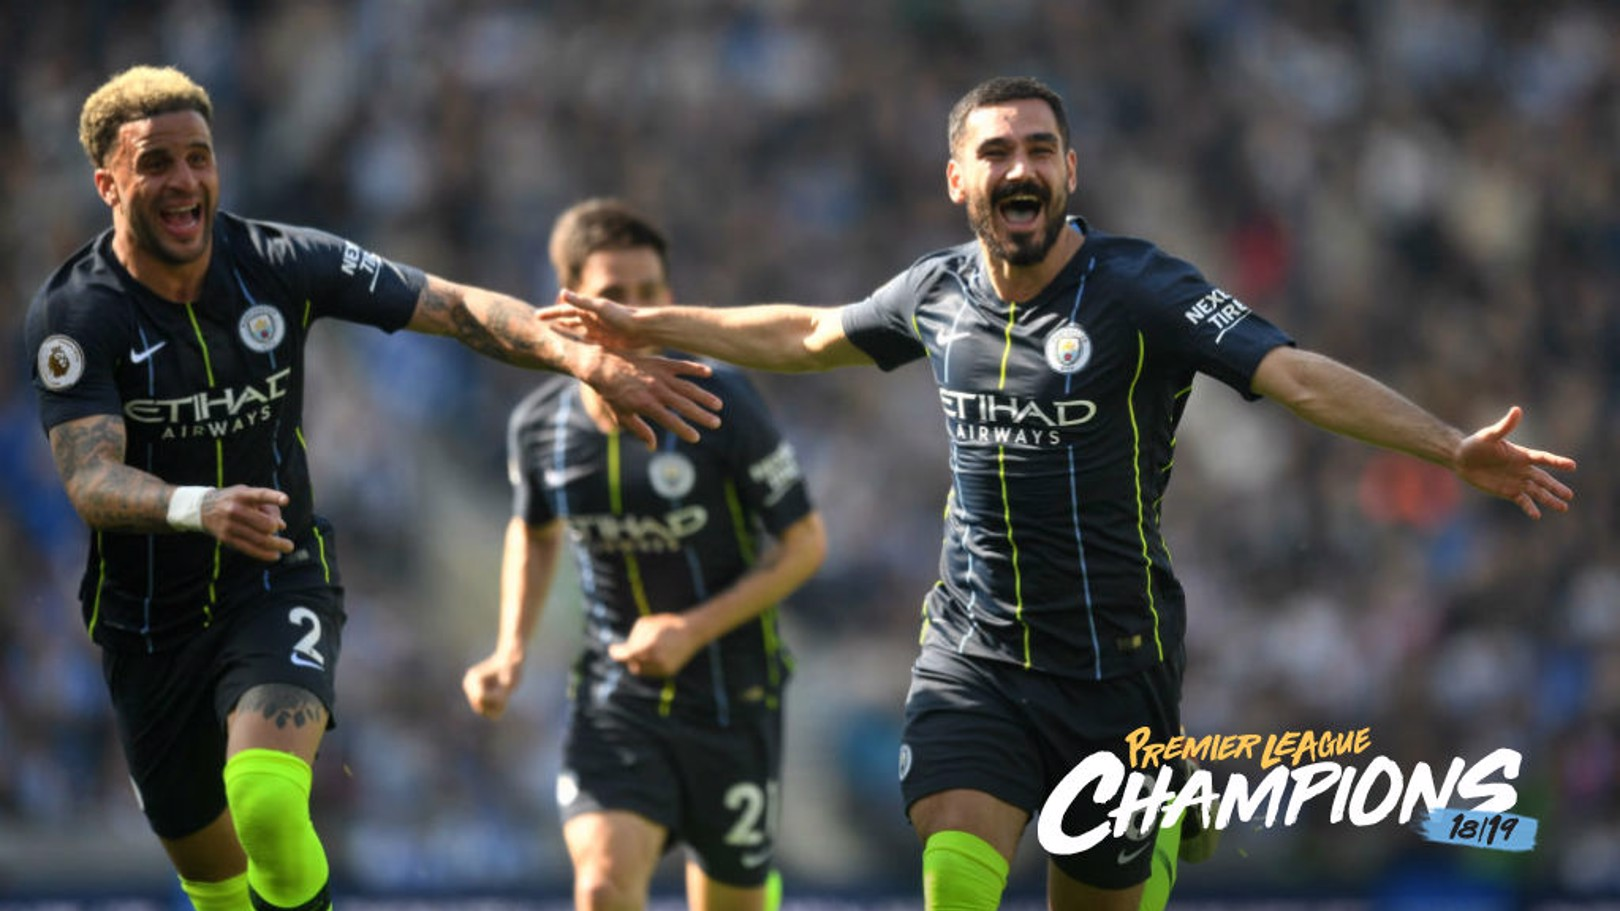 CHAMPIONS: All the number you need to celebrate our latest title win